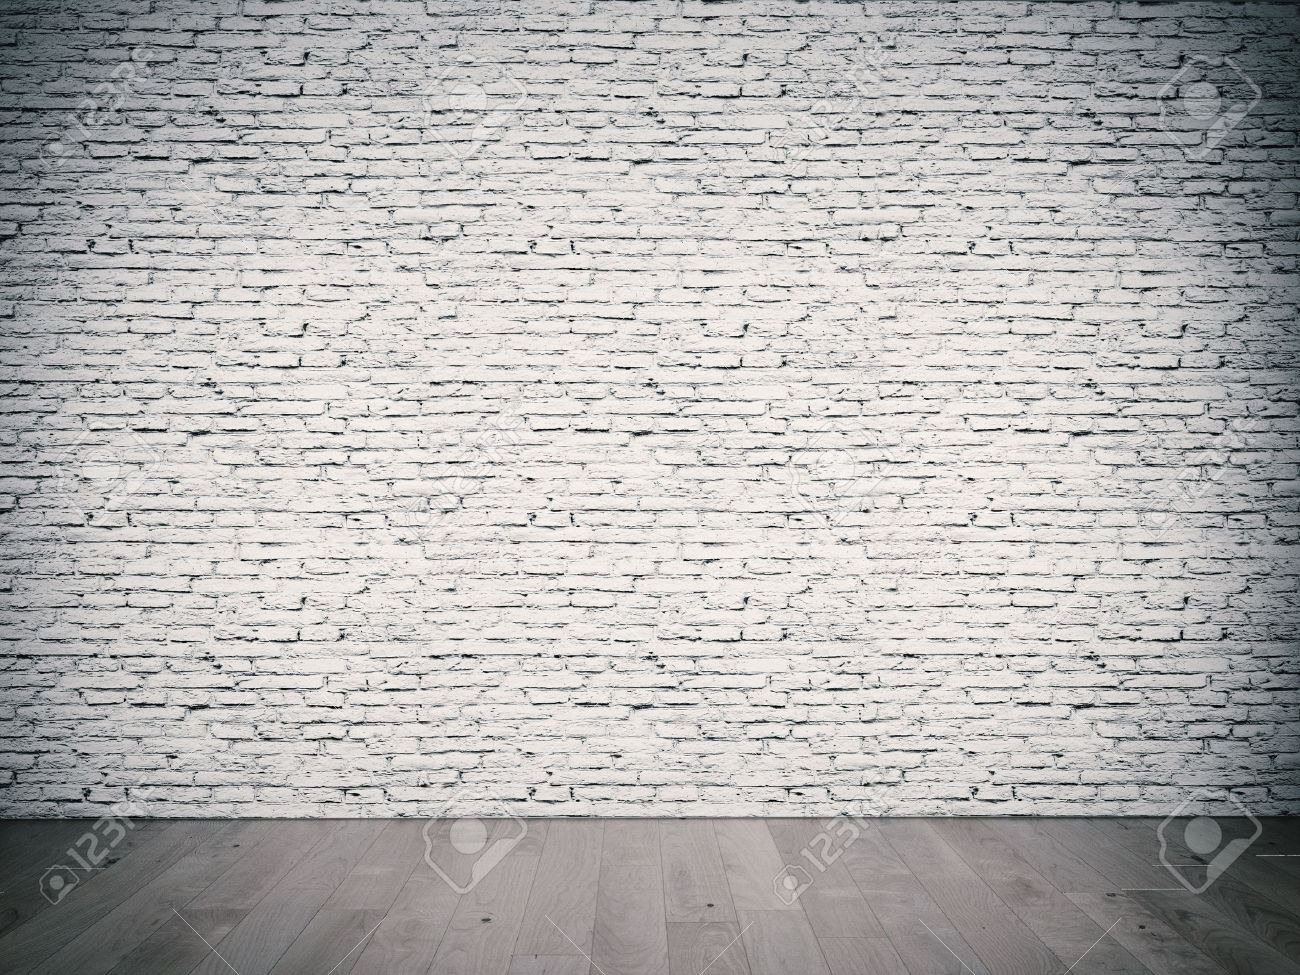 interior room with white brick wall and wooden floor Stock Photo - 19526675